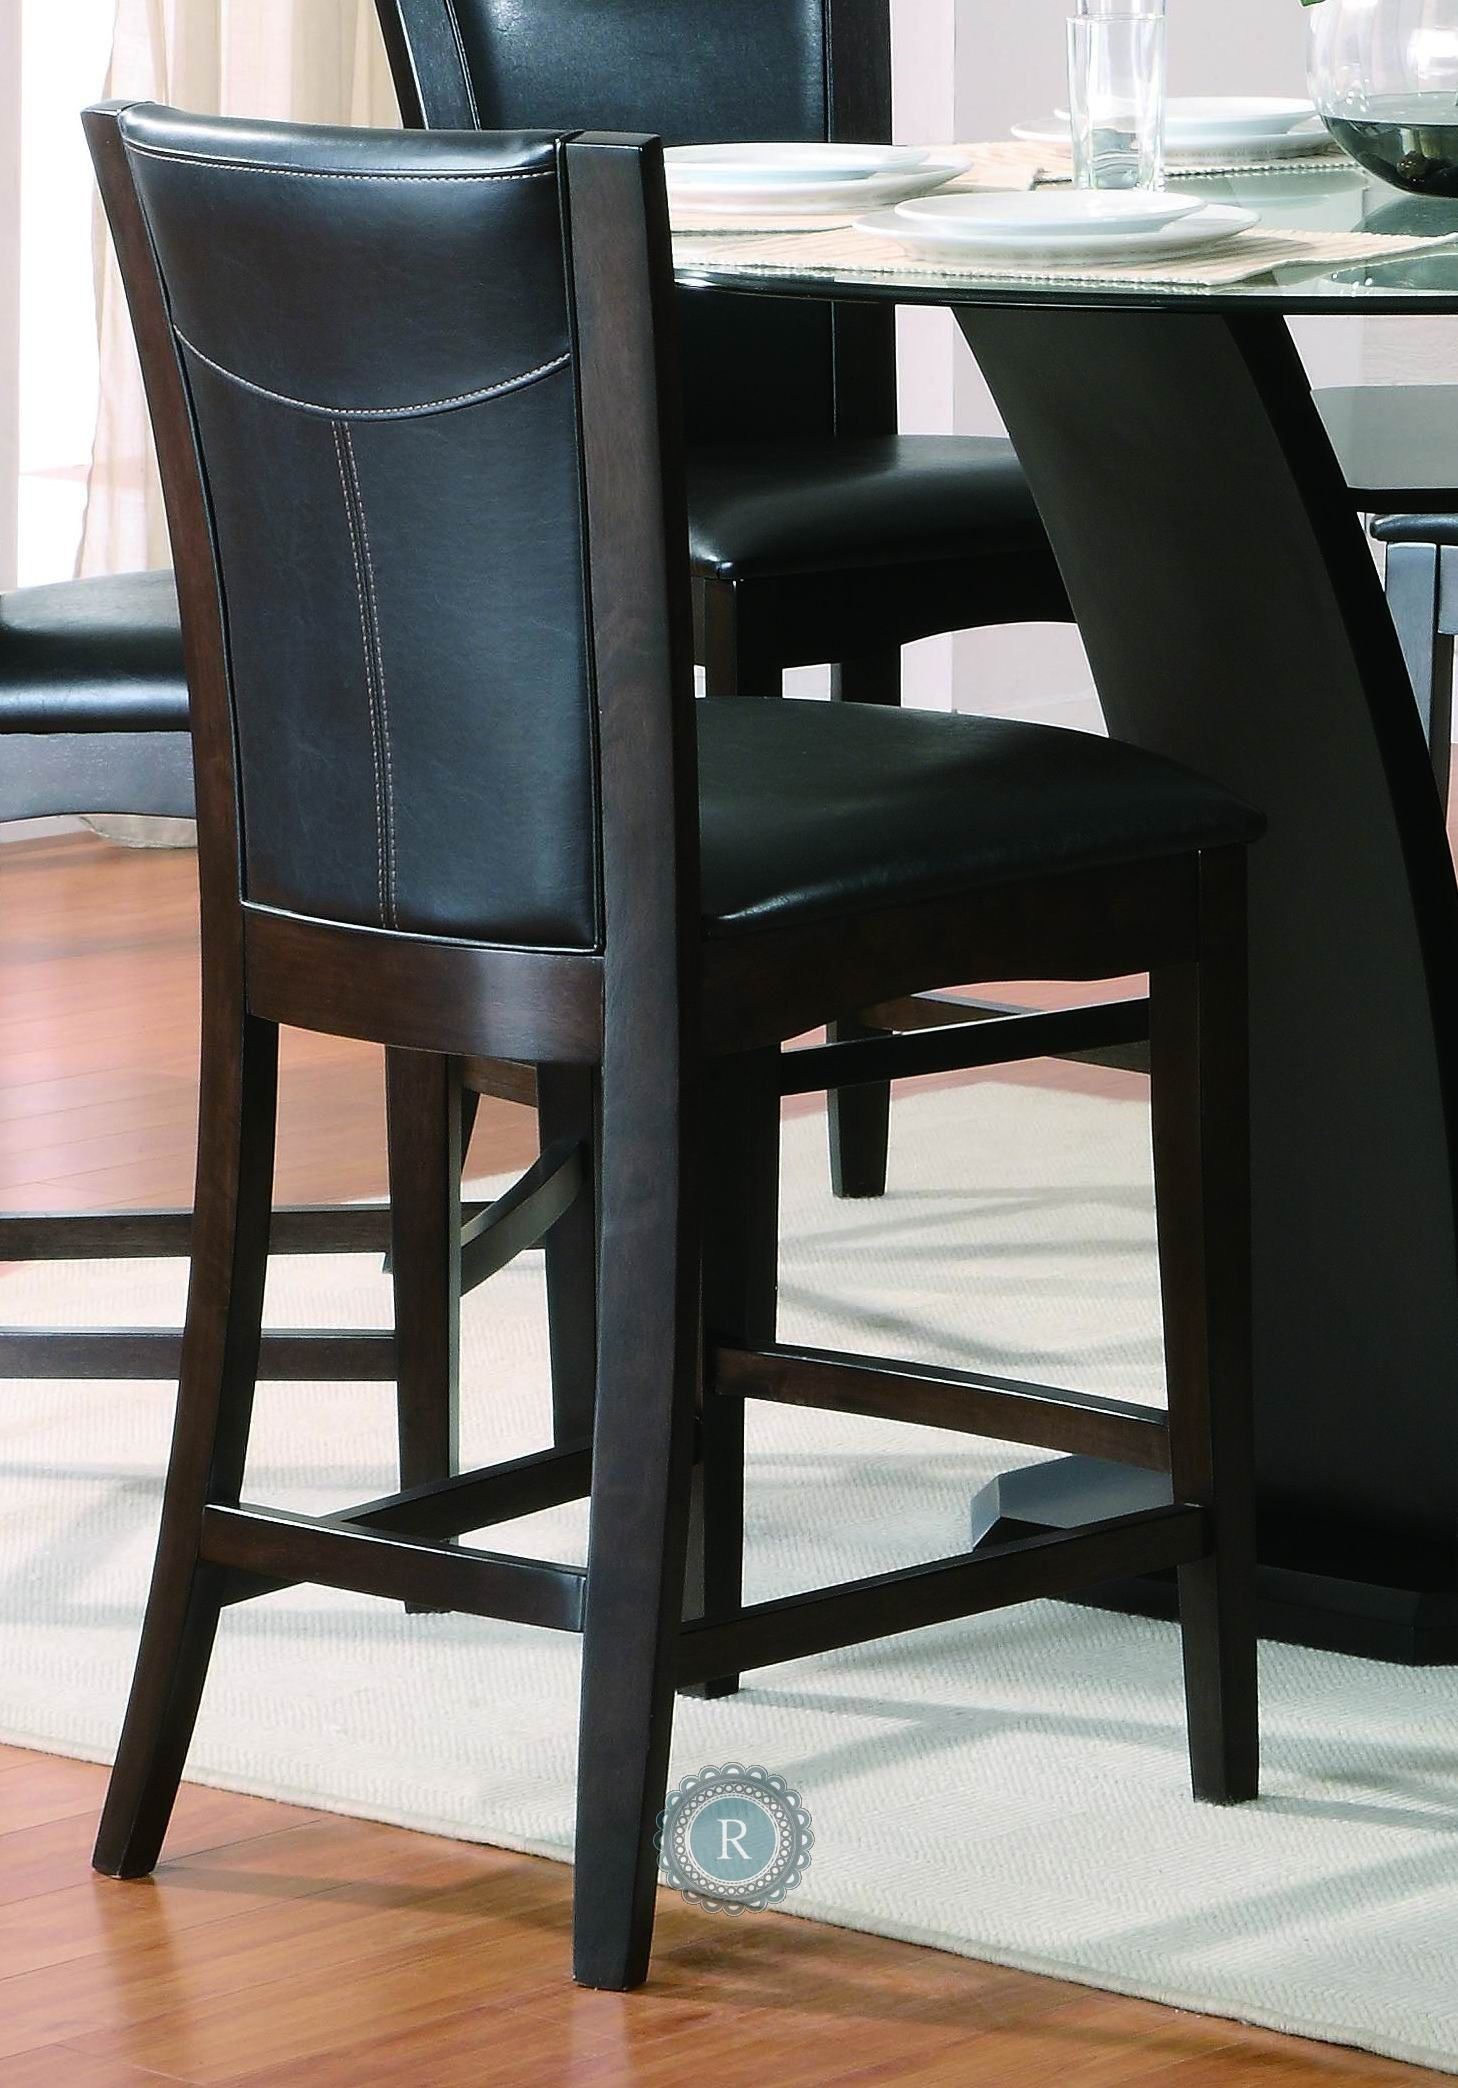 Counter Height Chair Daisy Black Counter Height Chair From Homelegance 710 24